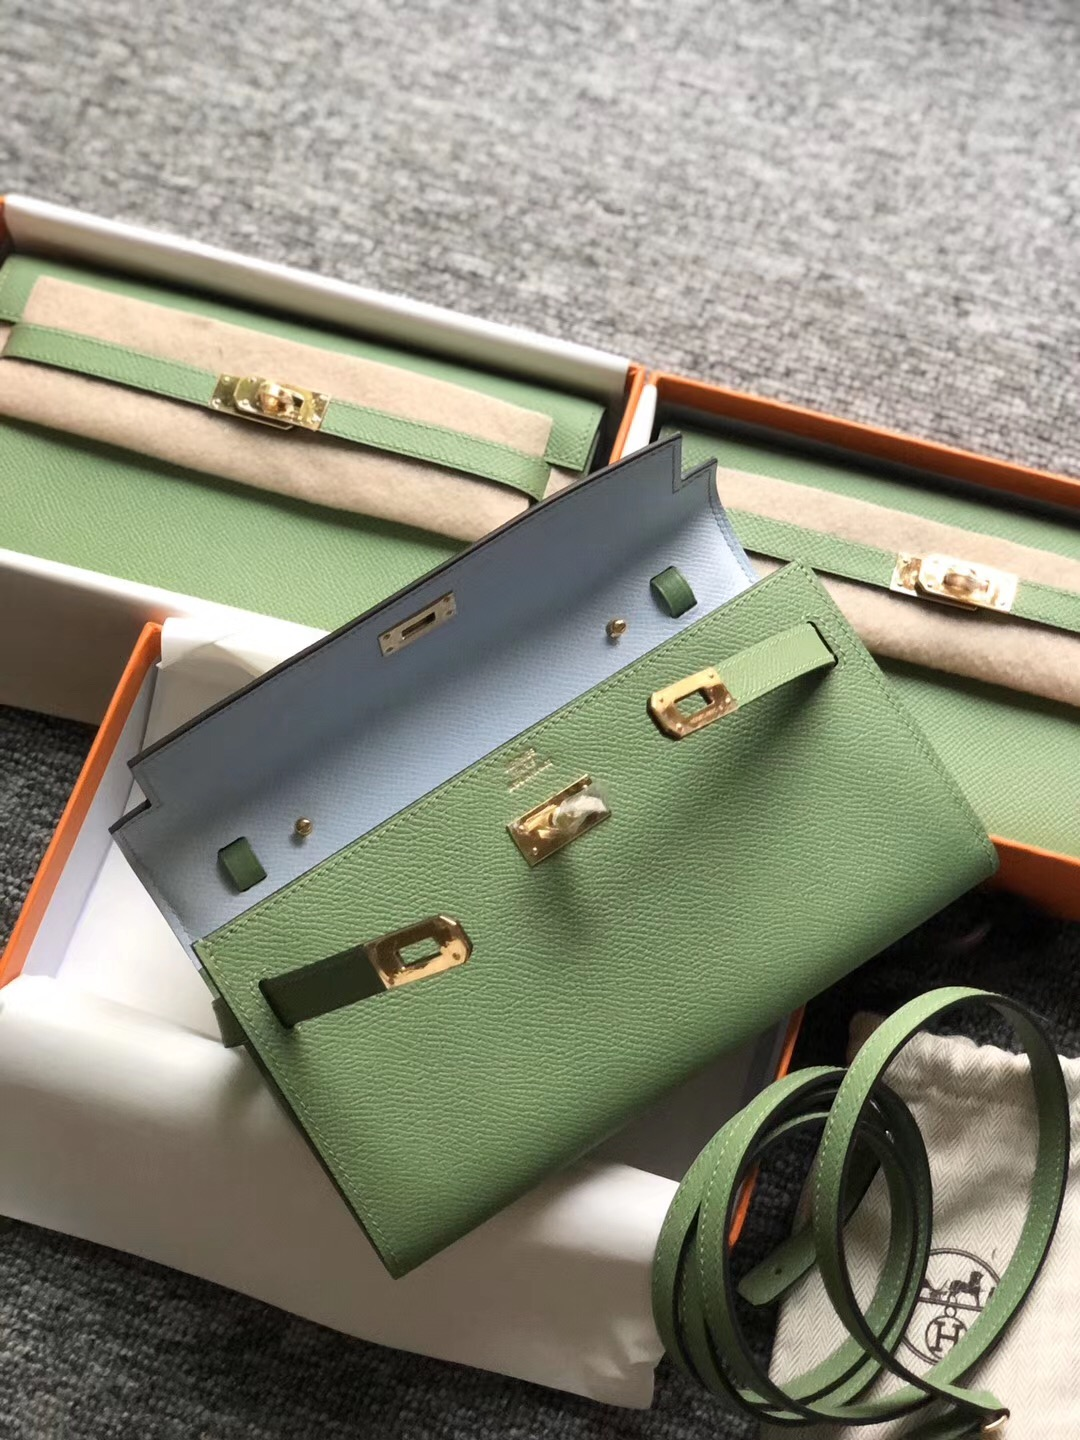 Hermes Kelly Classique To Go 3i Vert Criquet 牛油果綠 T0霧藍色 blue brume